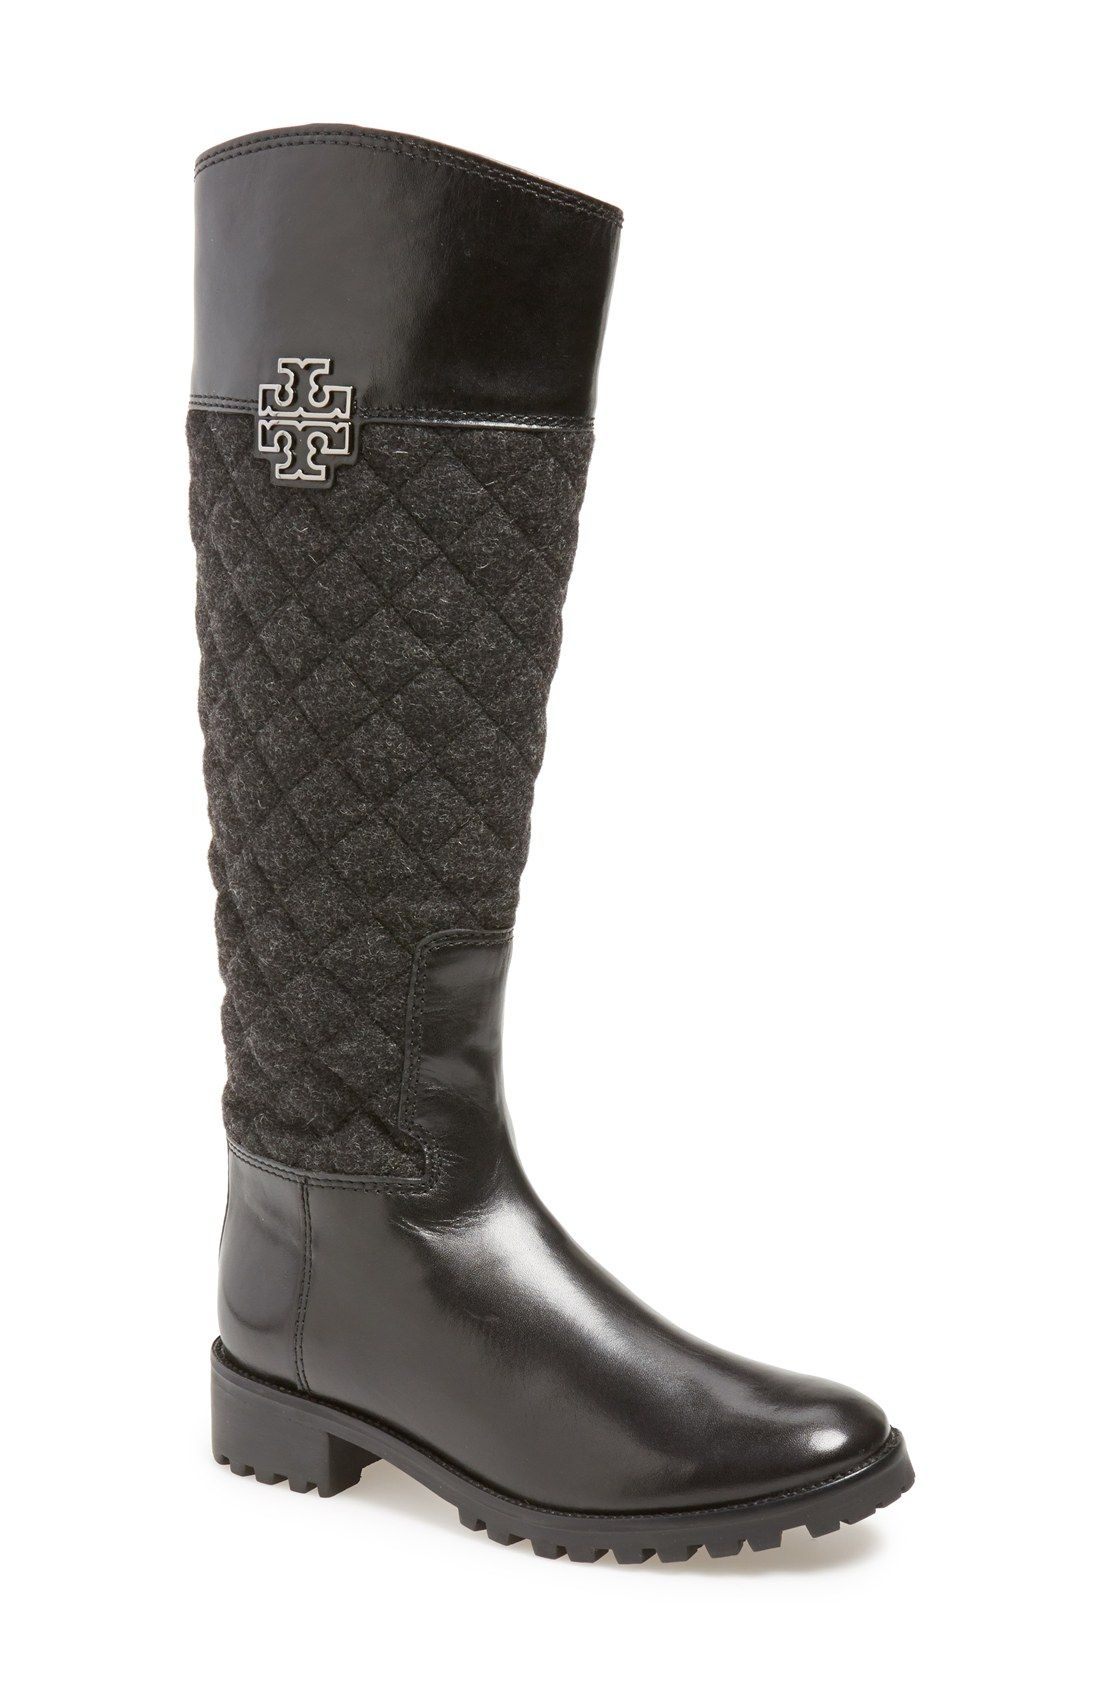 e18fd94ab6f Swooning over these quilted riding boots by Tory Burch.